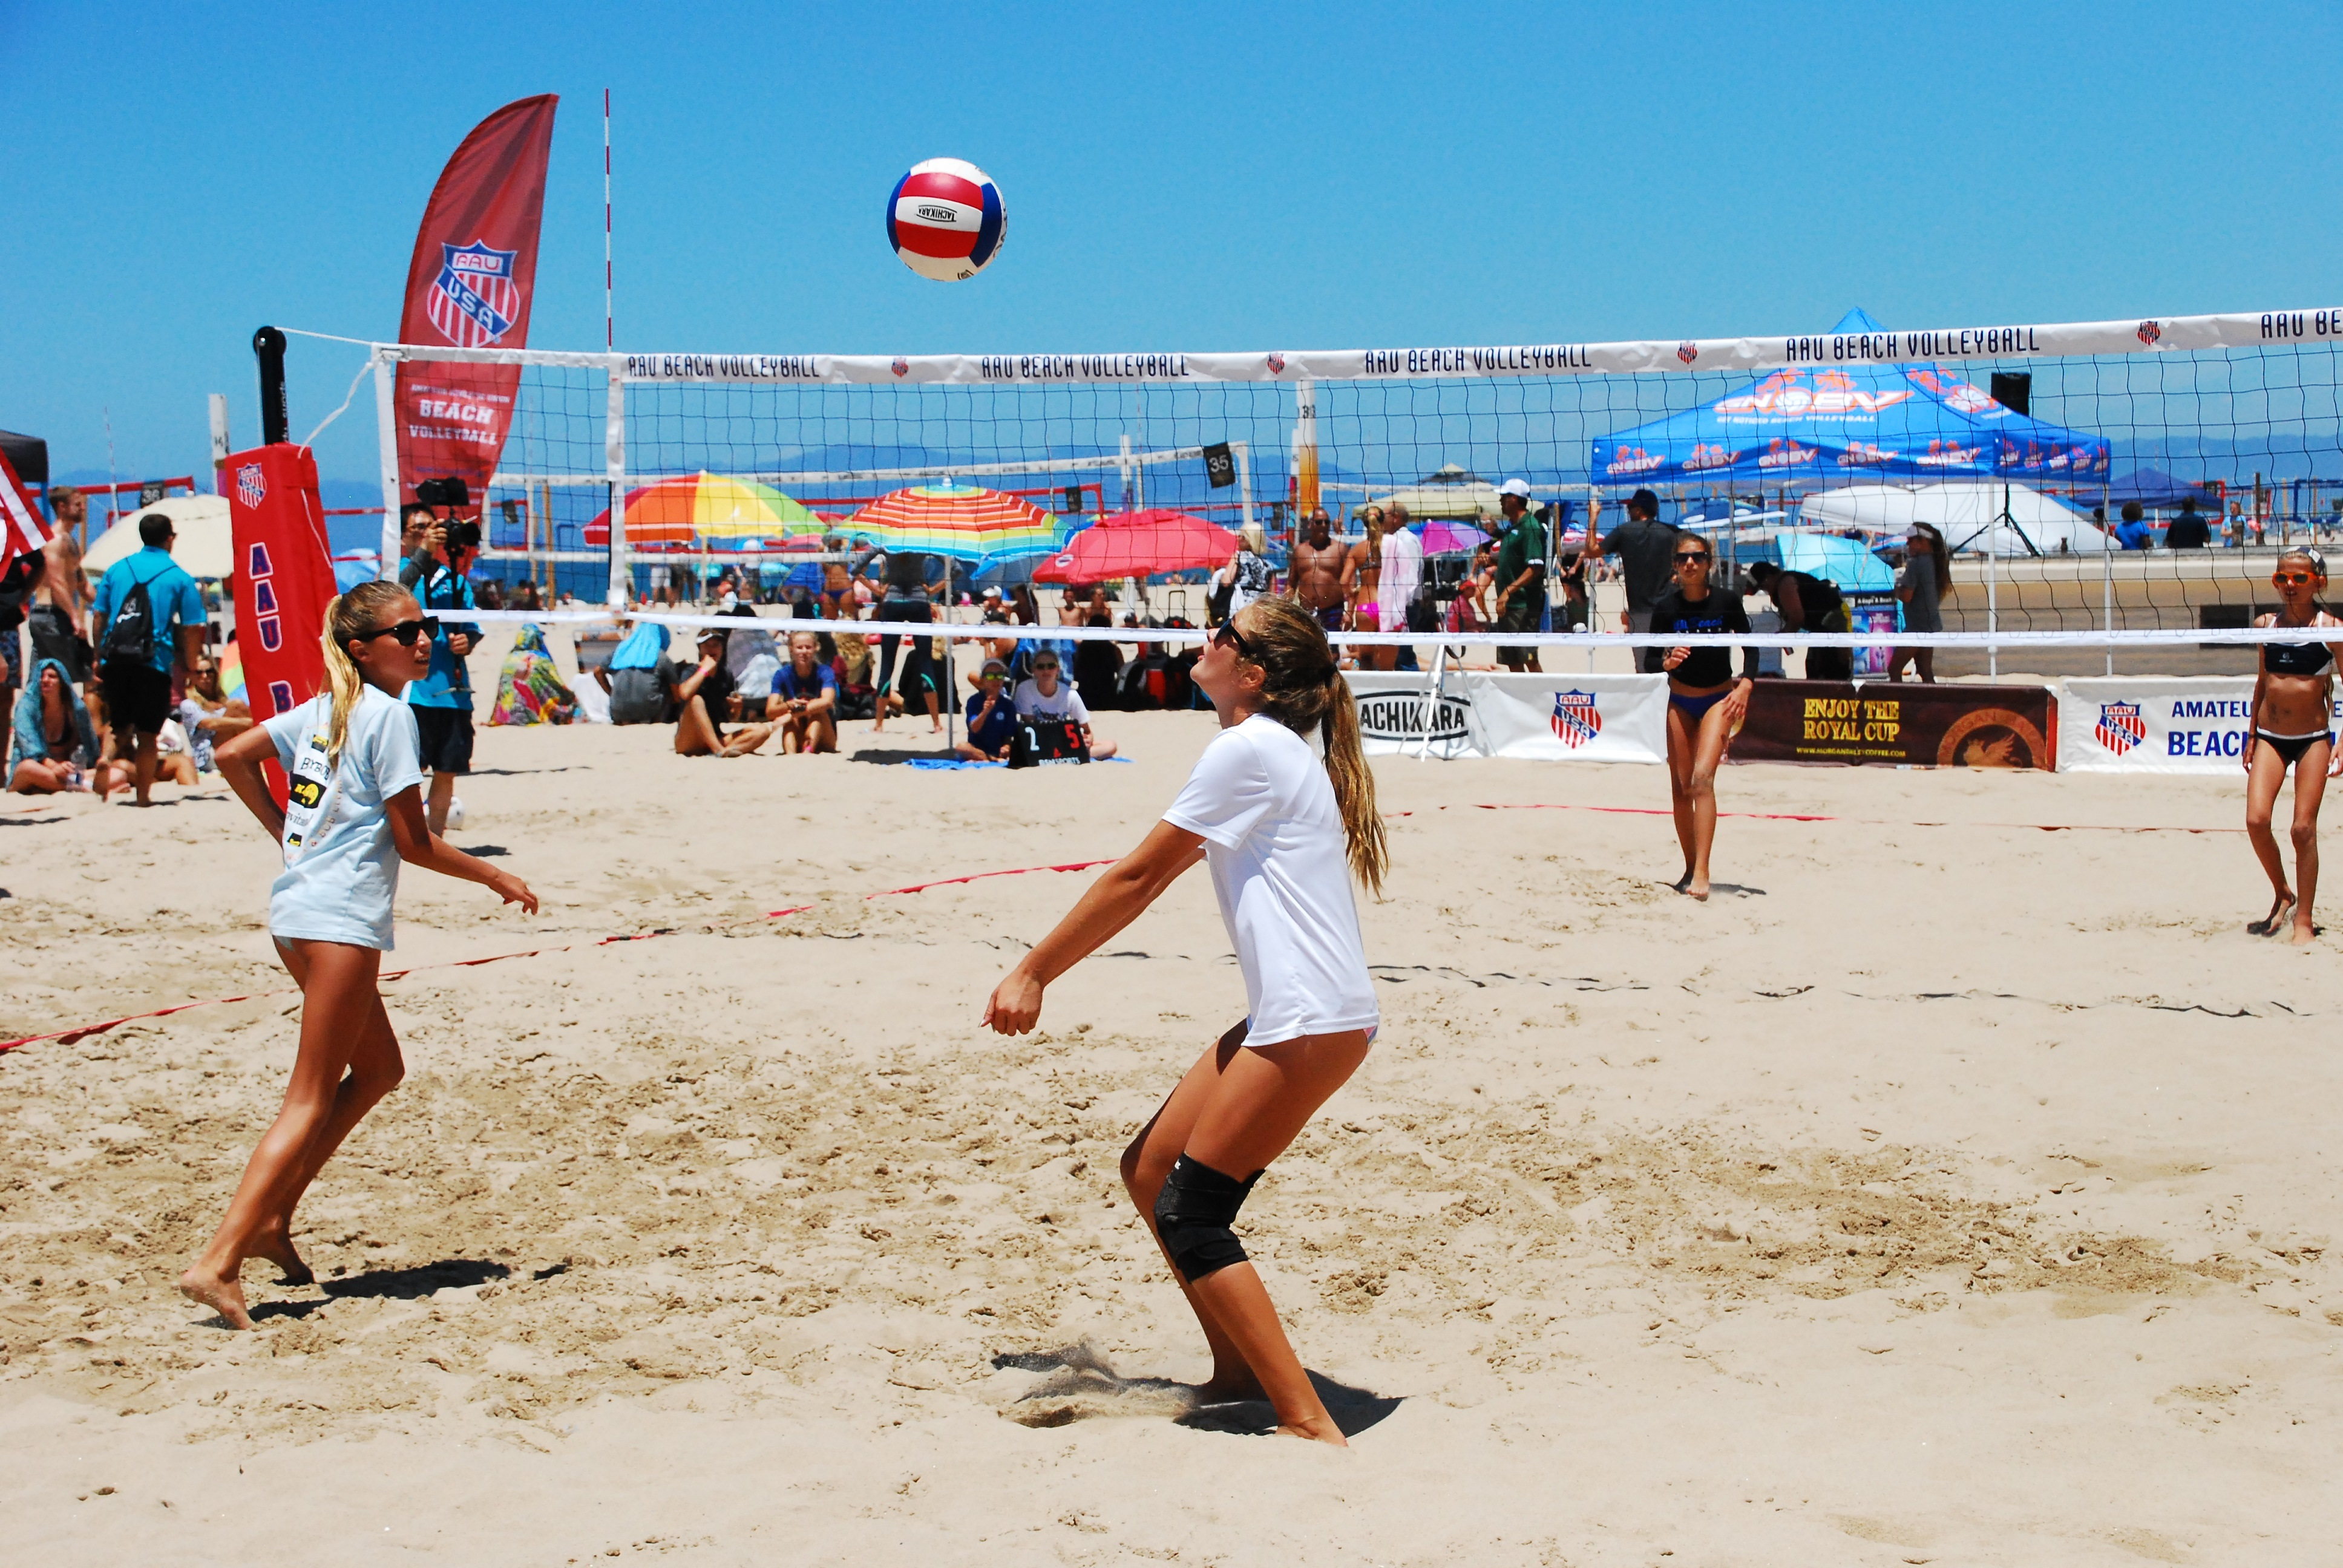 Leah Kelly passes to Ava Gallien during the Girls 12U championship game. The Manhattan Beach duo were silver medalists. Photo